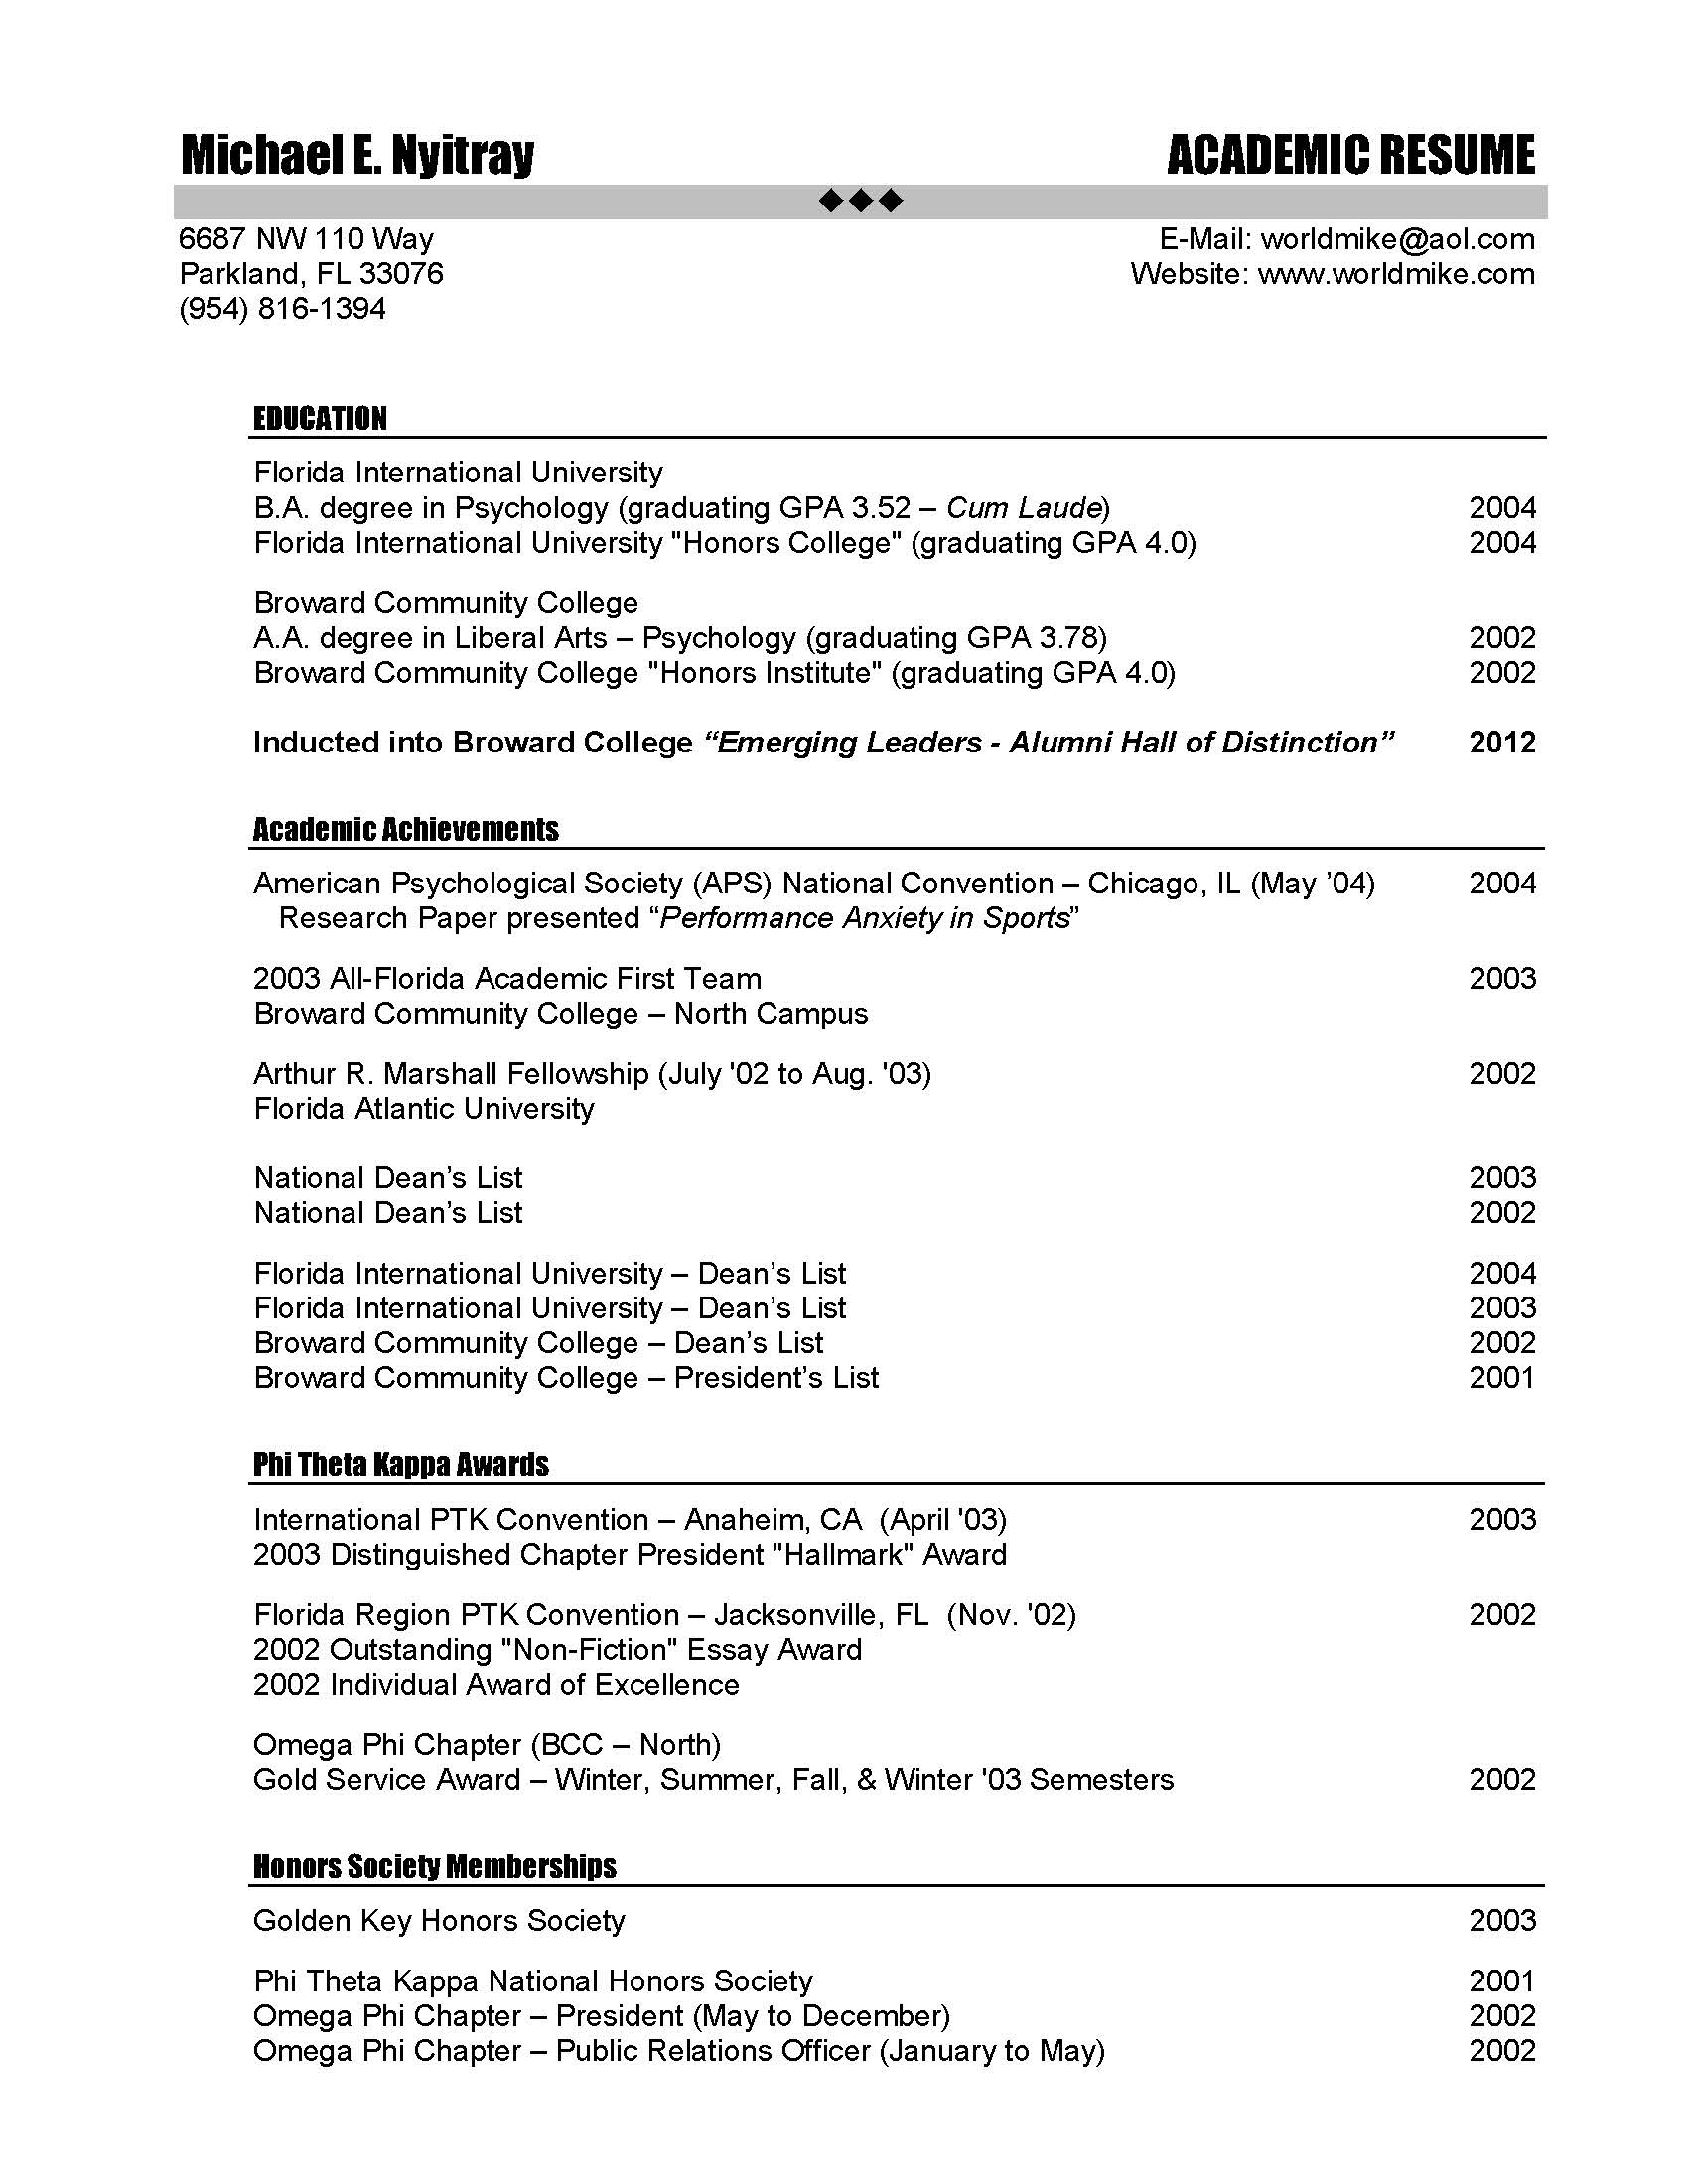 Examples of academic resumes